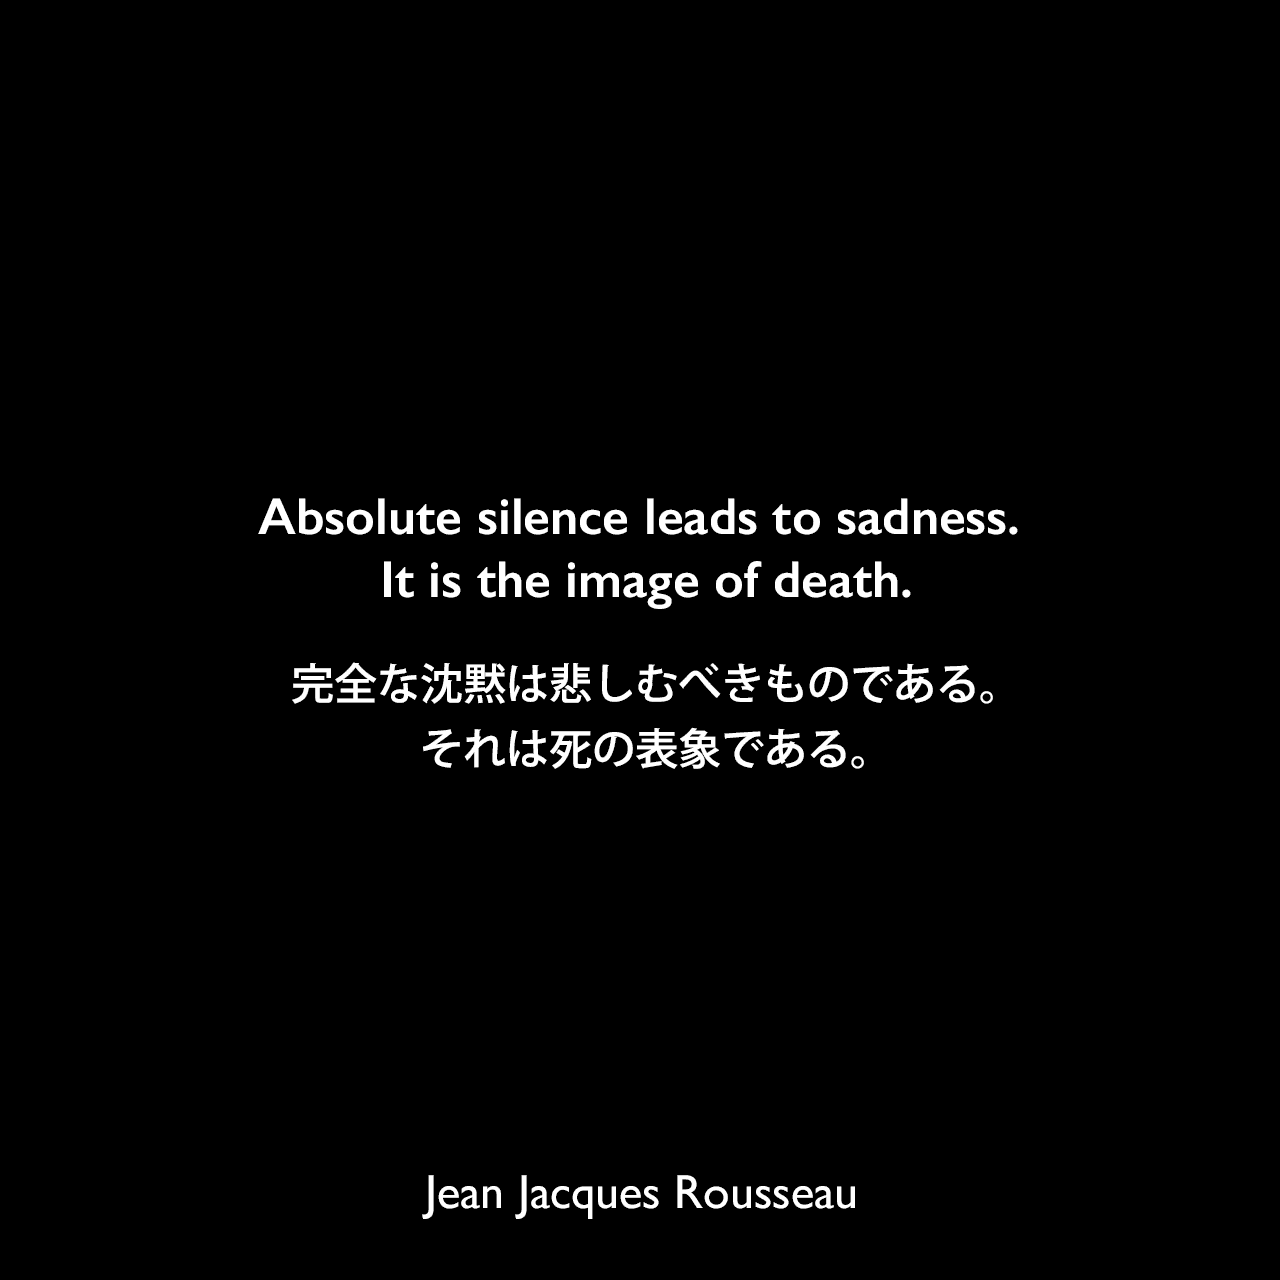 Absolute silence leads to sadness. It is the image of death.完全な沈黙は悲しむべきものである。それは死の表象である。Jean Jacques Rousseau